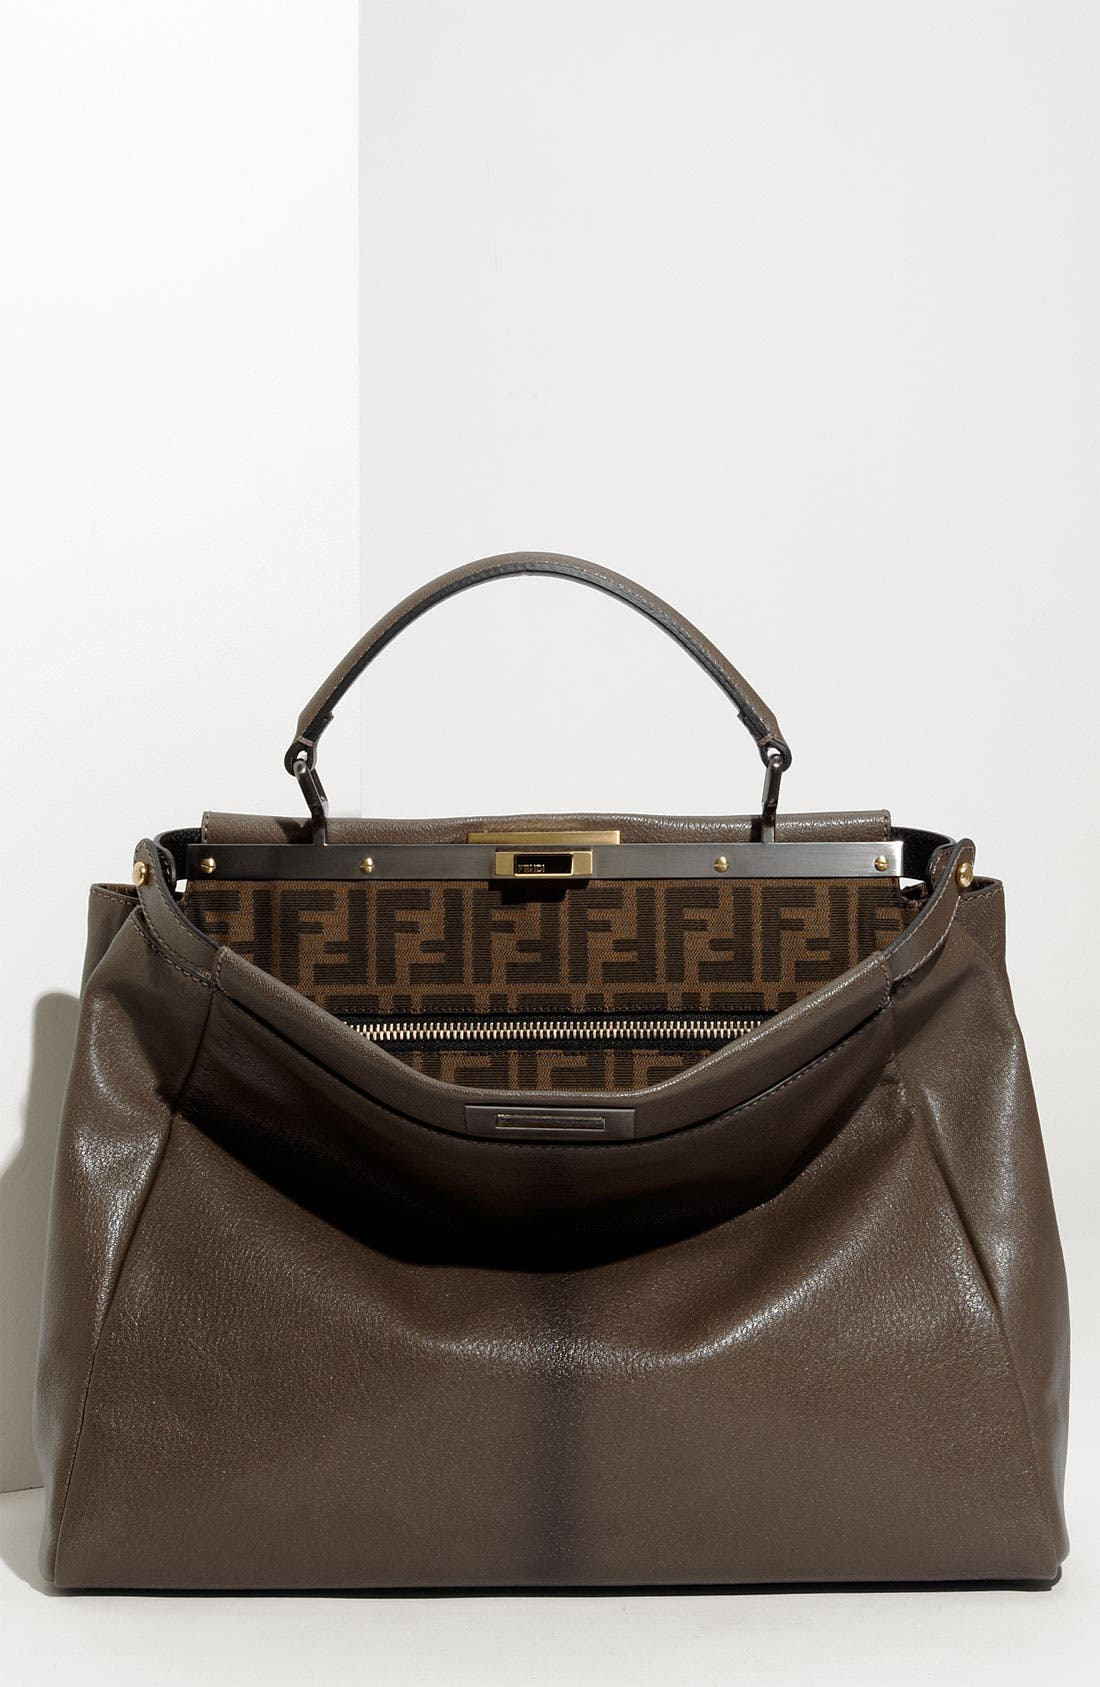 Main Image - Fendi 'Peekaboo - Large' Leather Satchel